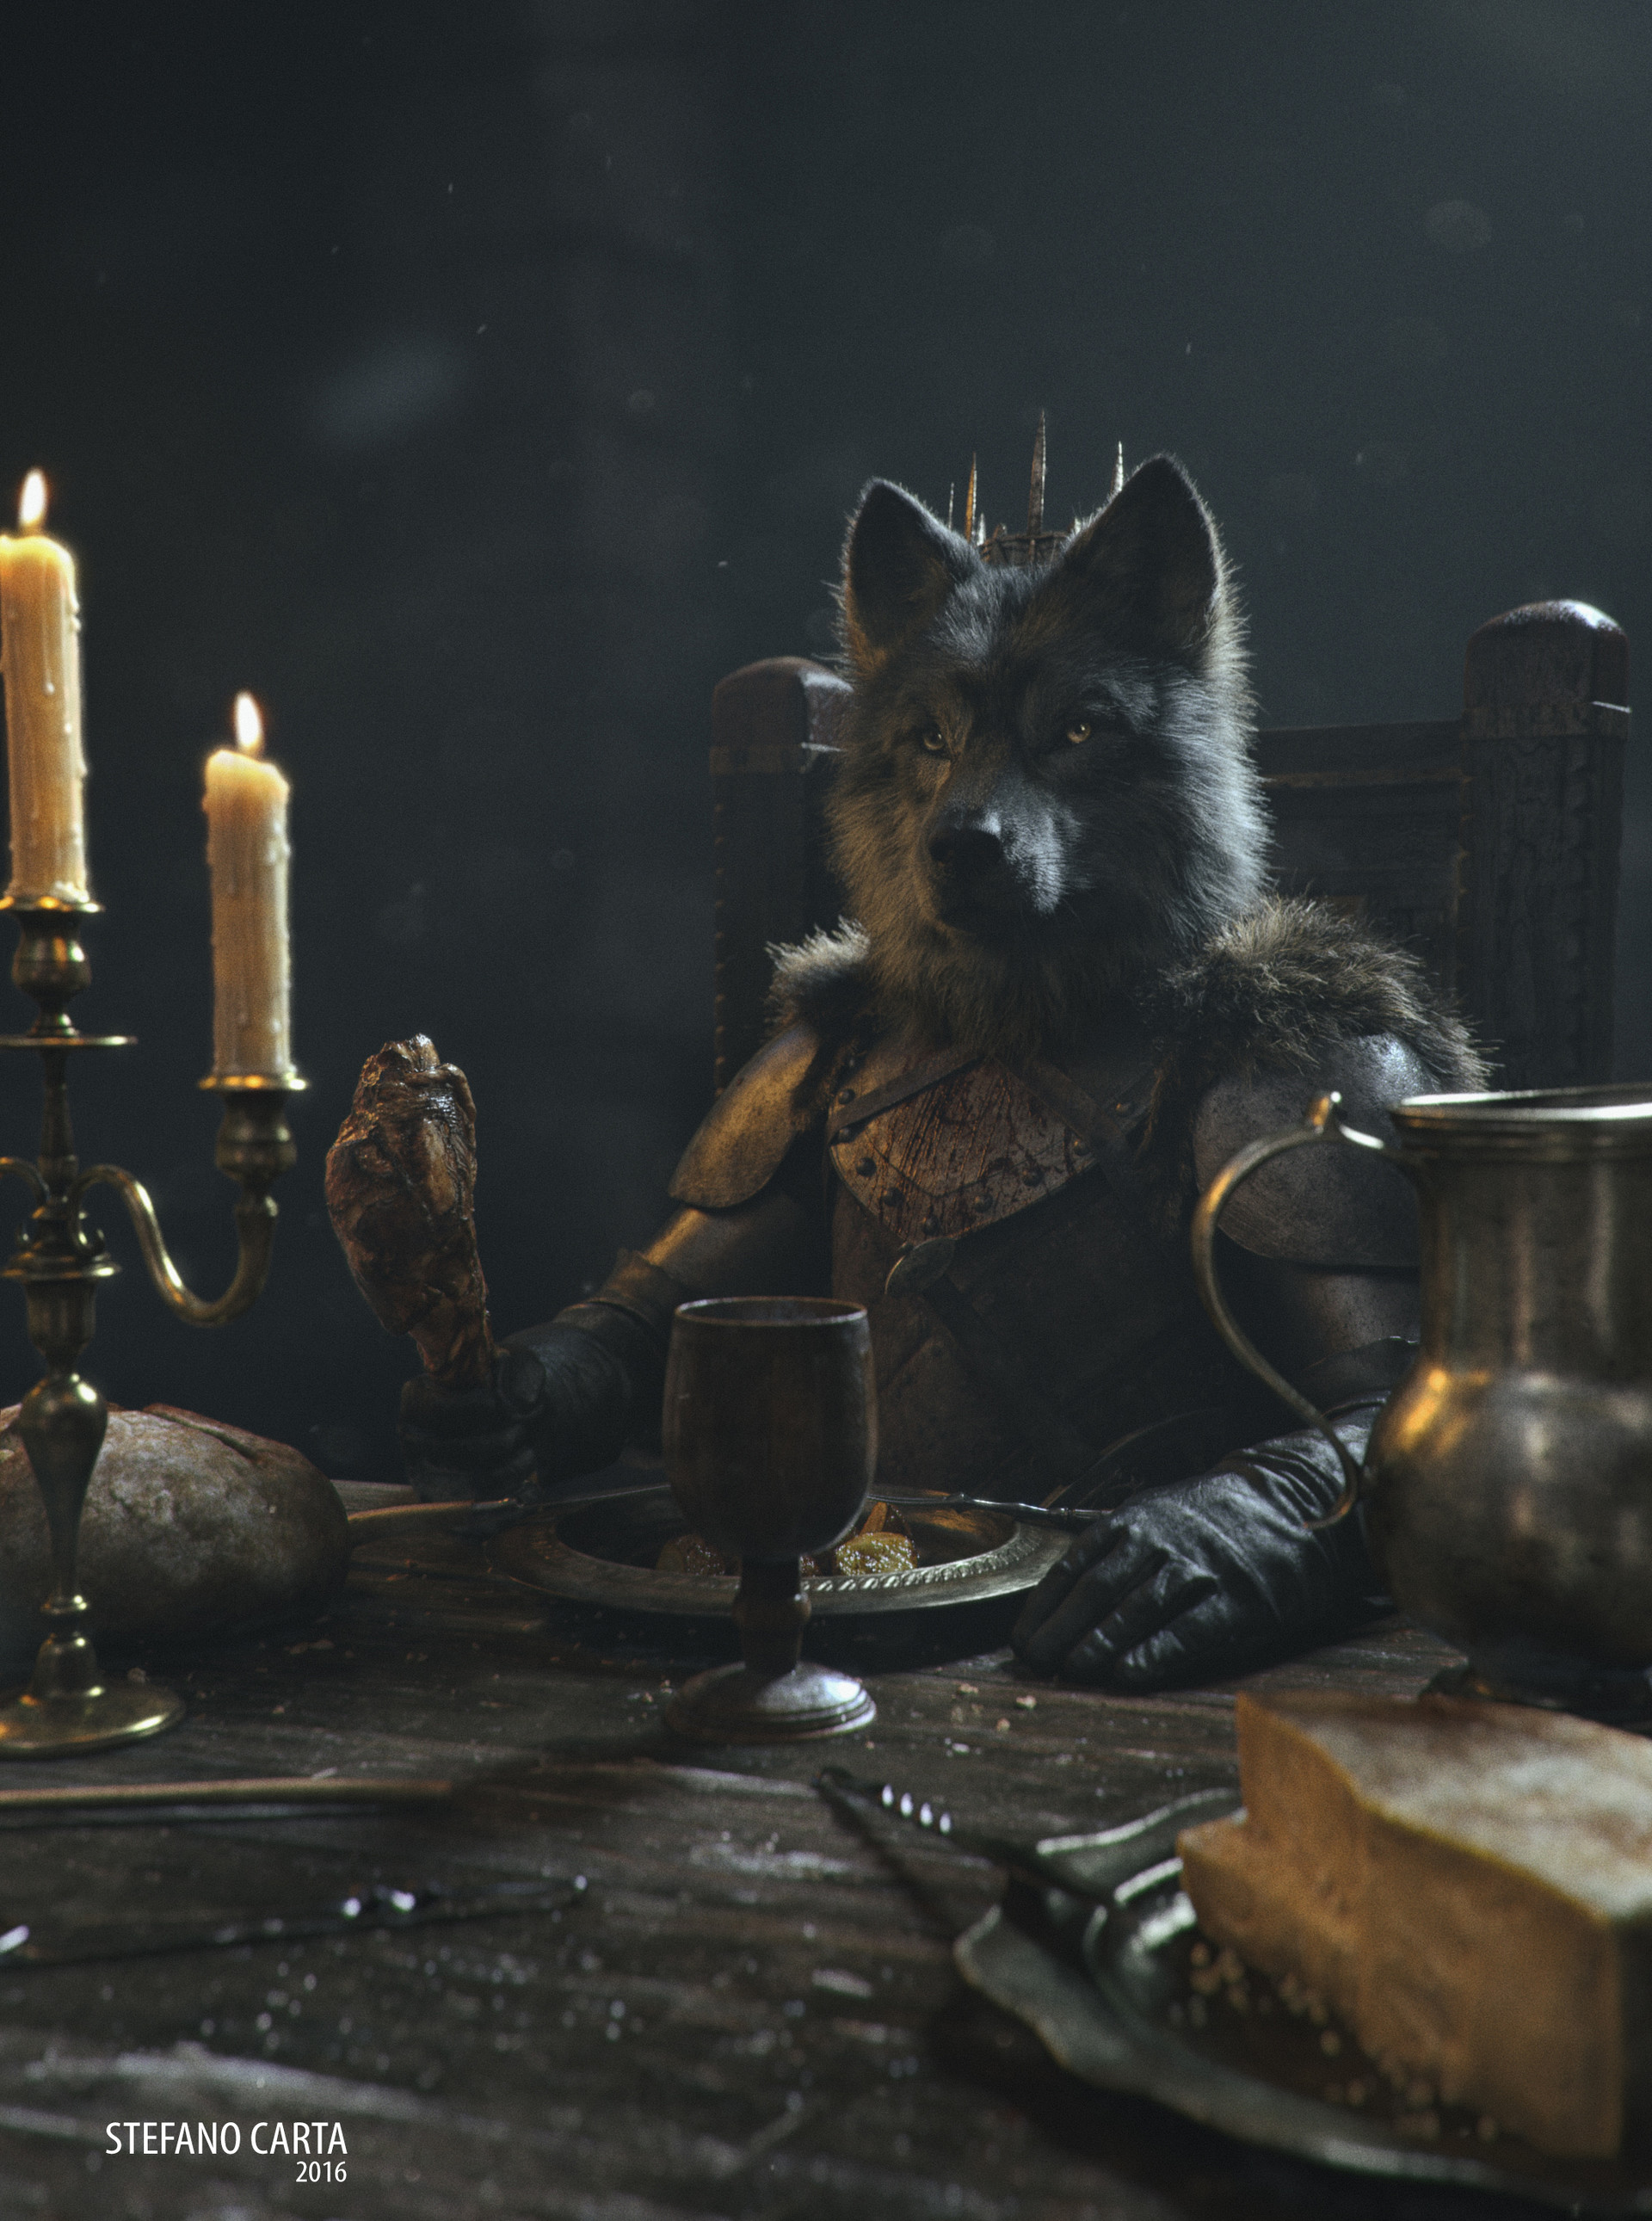 King Crown Hd Wallpaper Artstation The Young Wolf Stefano Carta